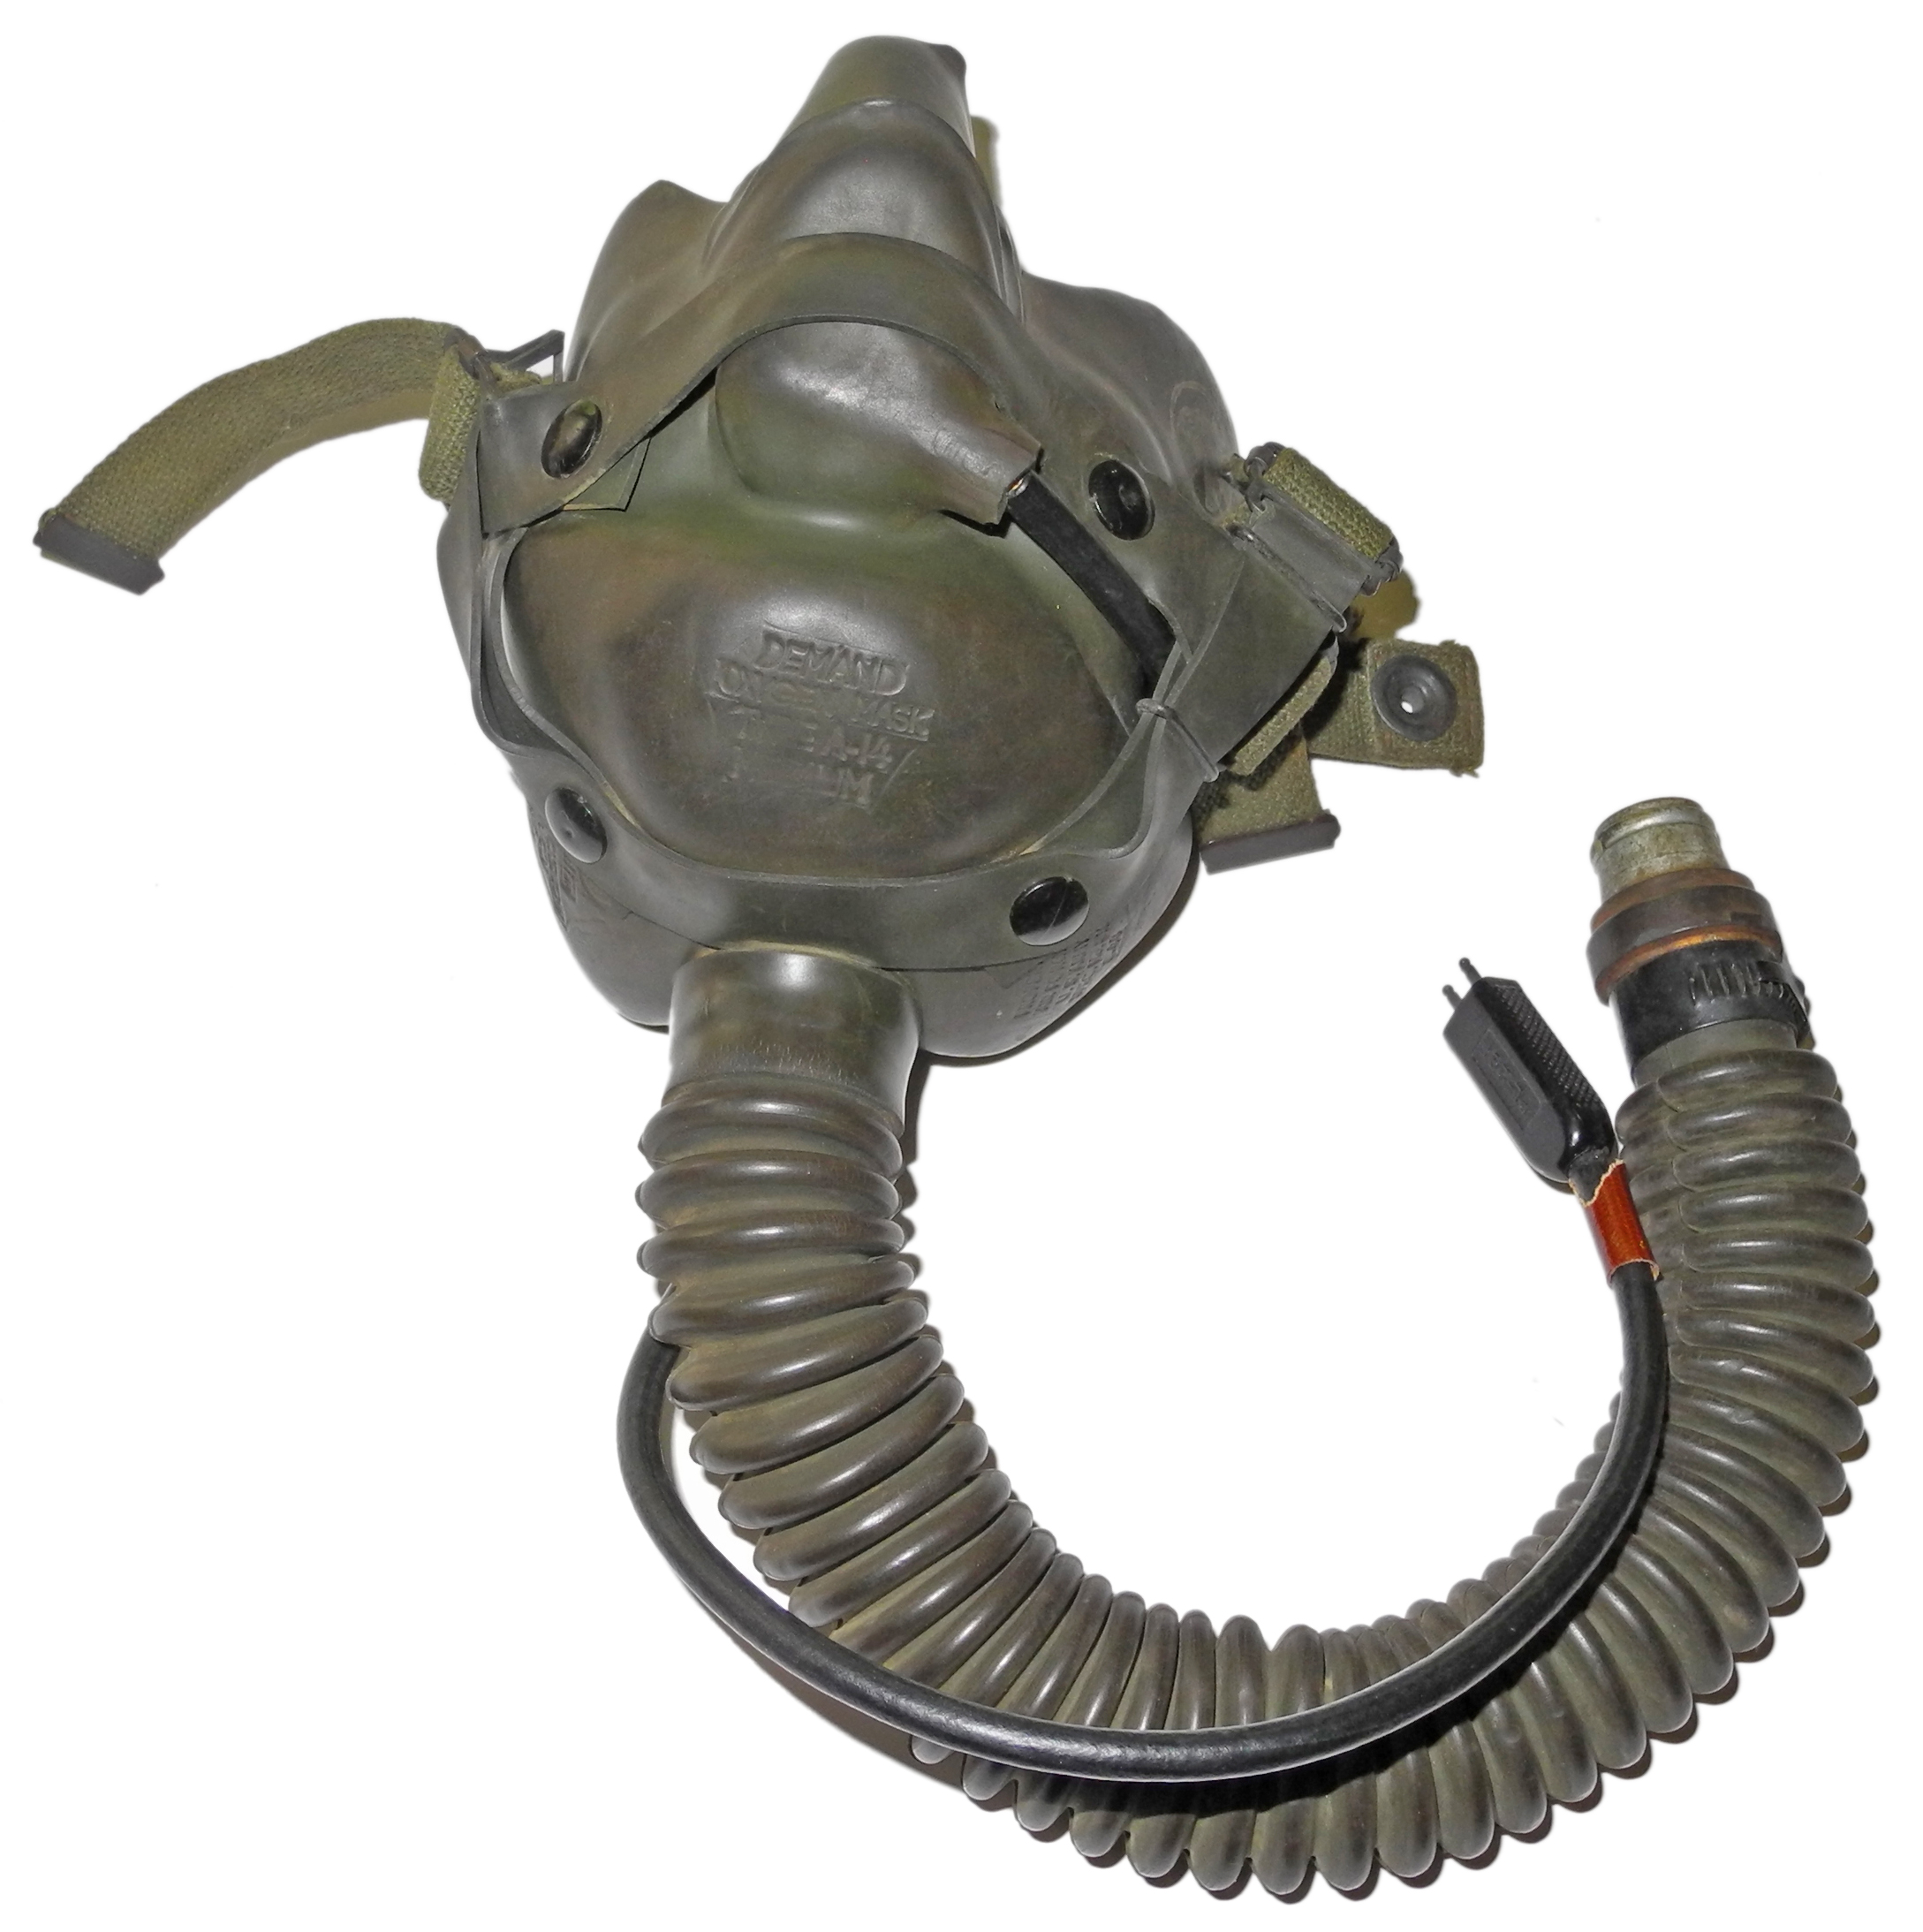 AAF A-14 mask with mic.